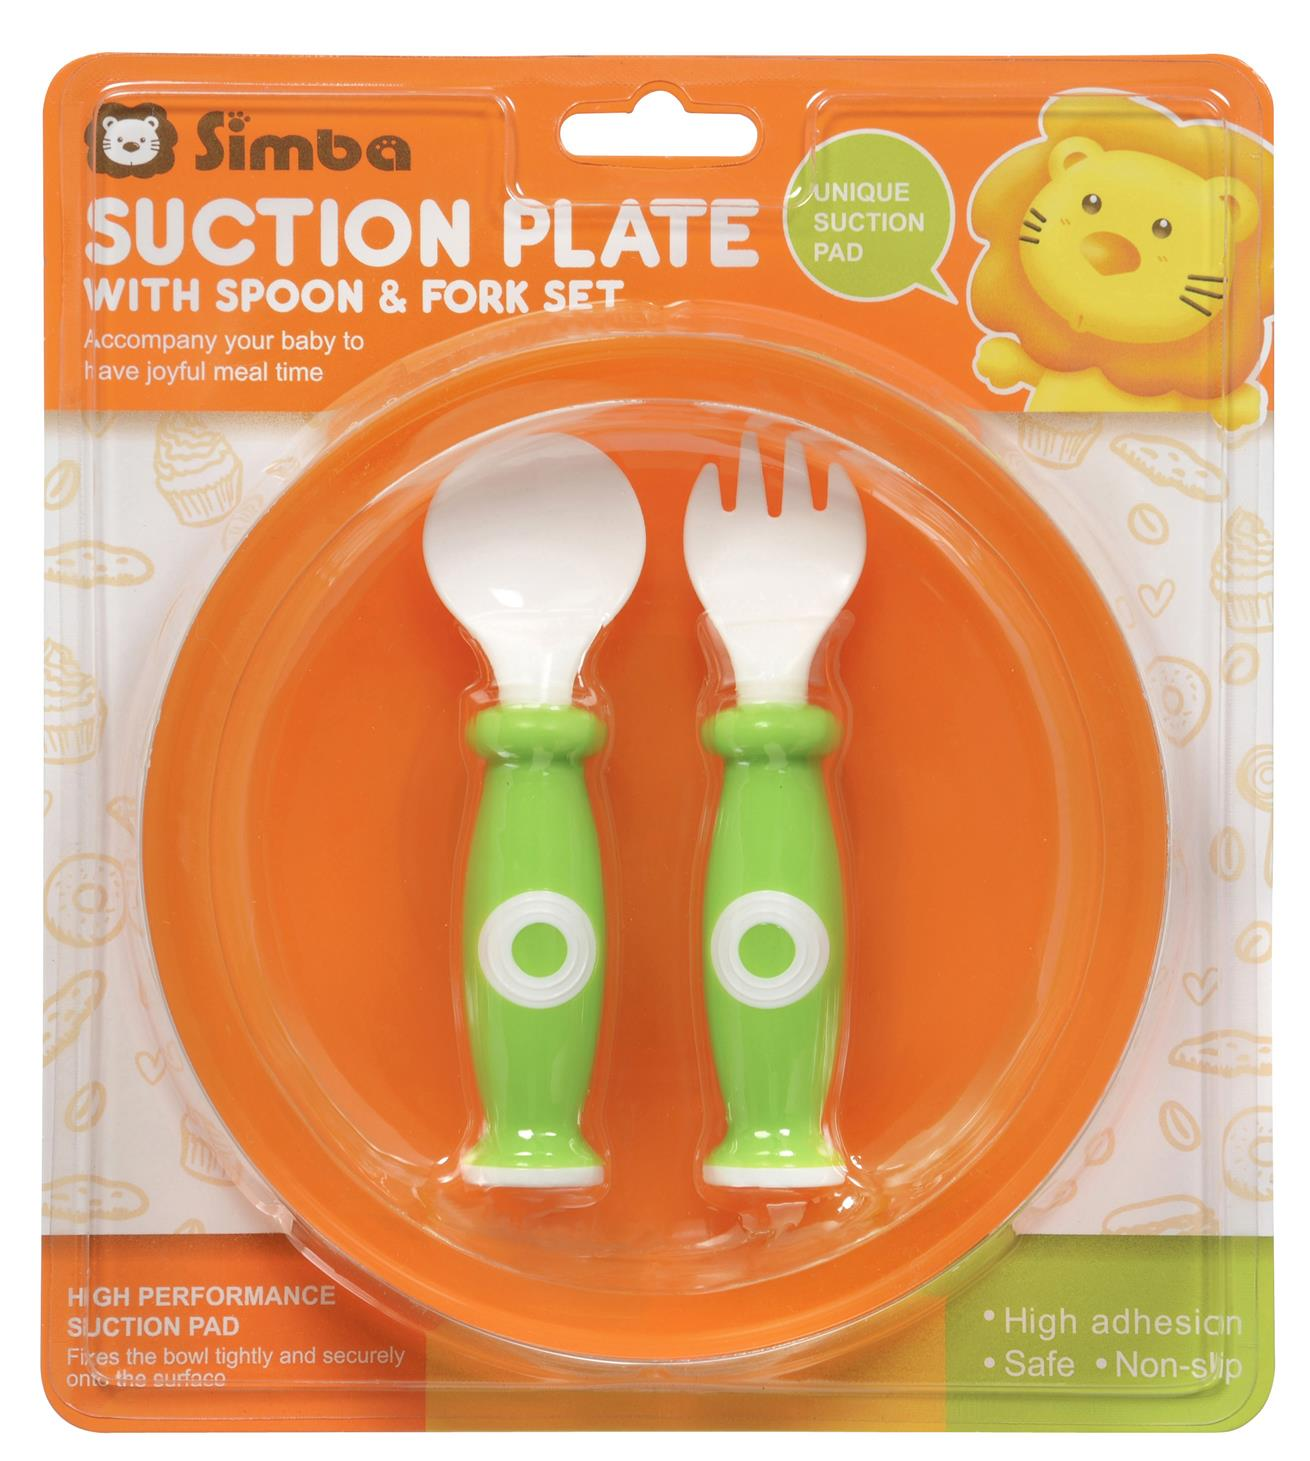 SIMBA Suction Plate With Spoon & Fork Set (Orange)